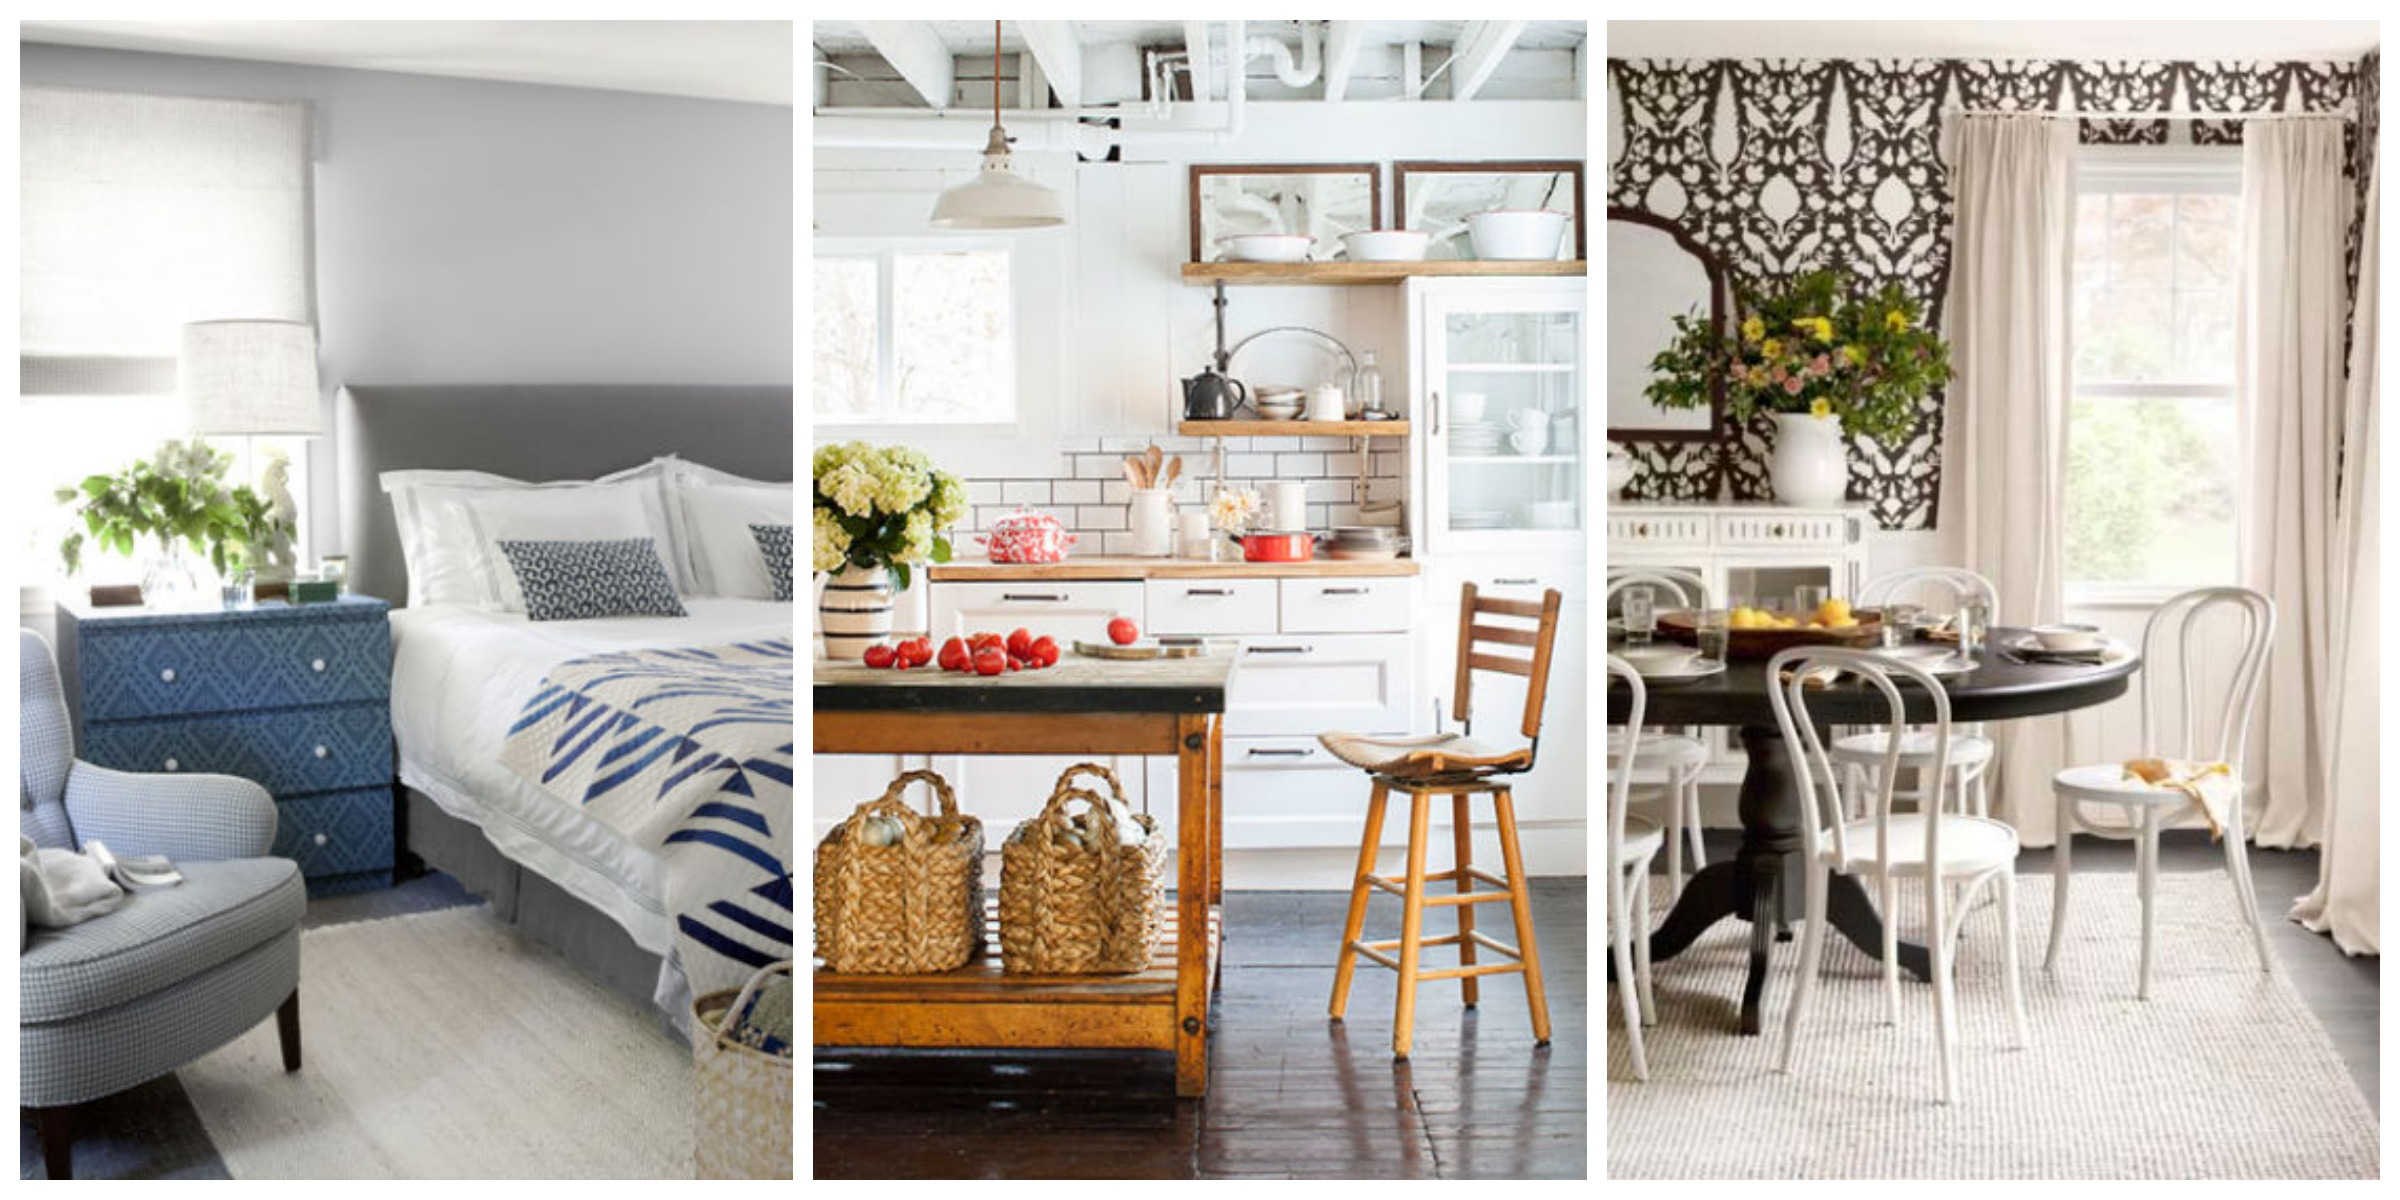 Do It Yourself Home Design: Before And After Home Makeovers